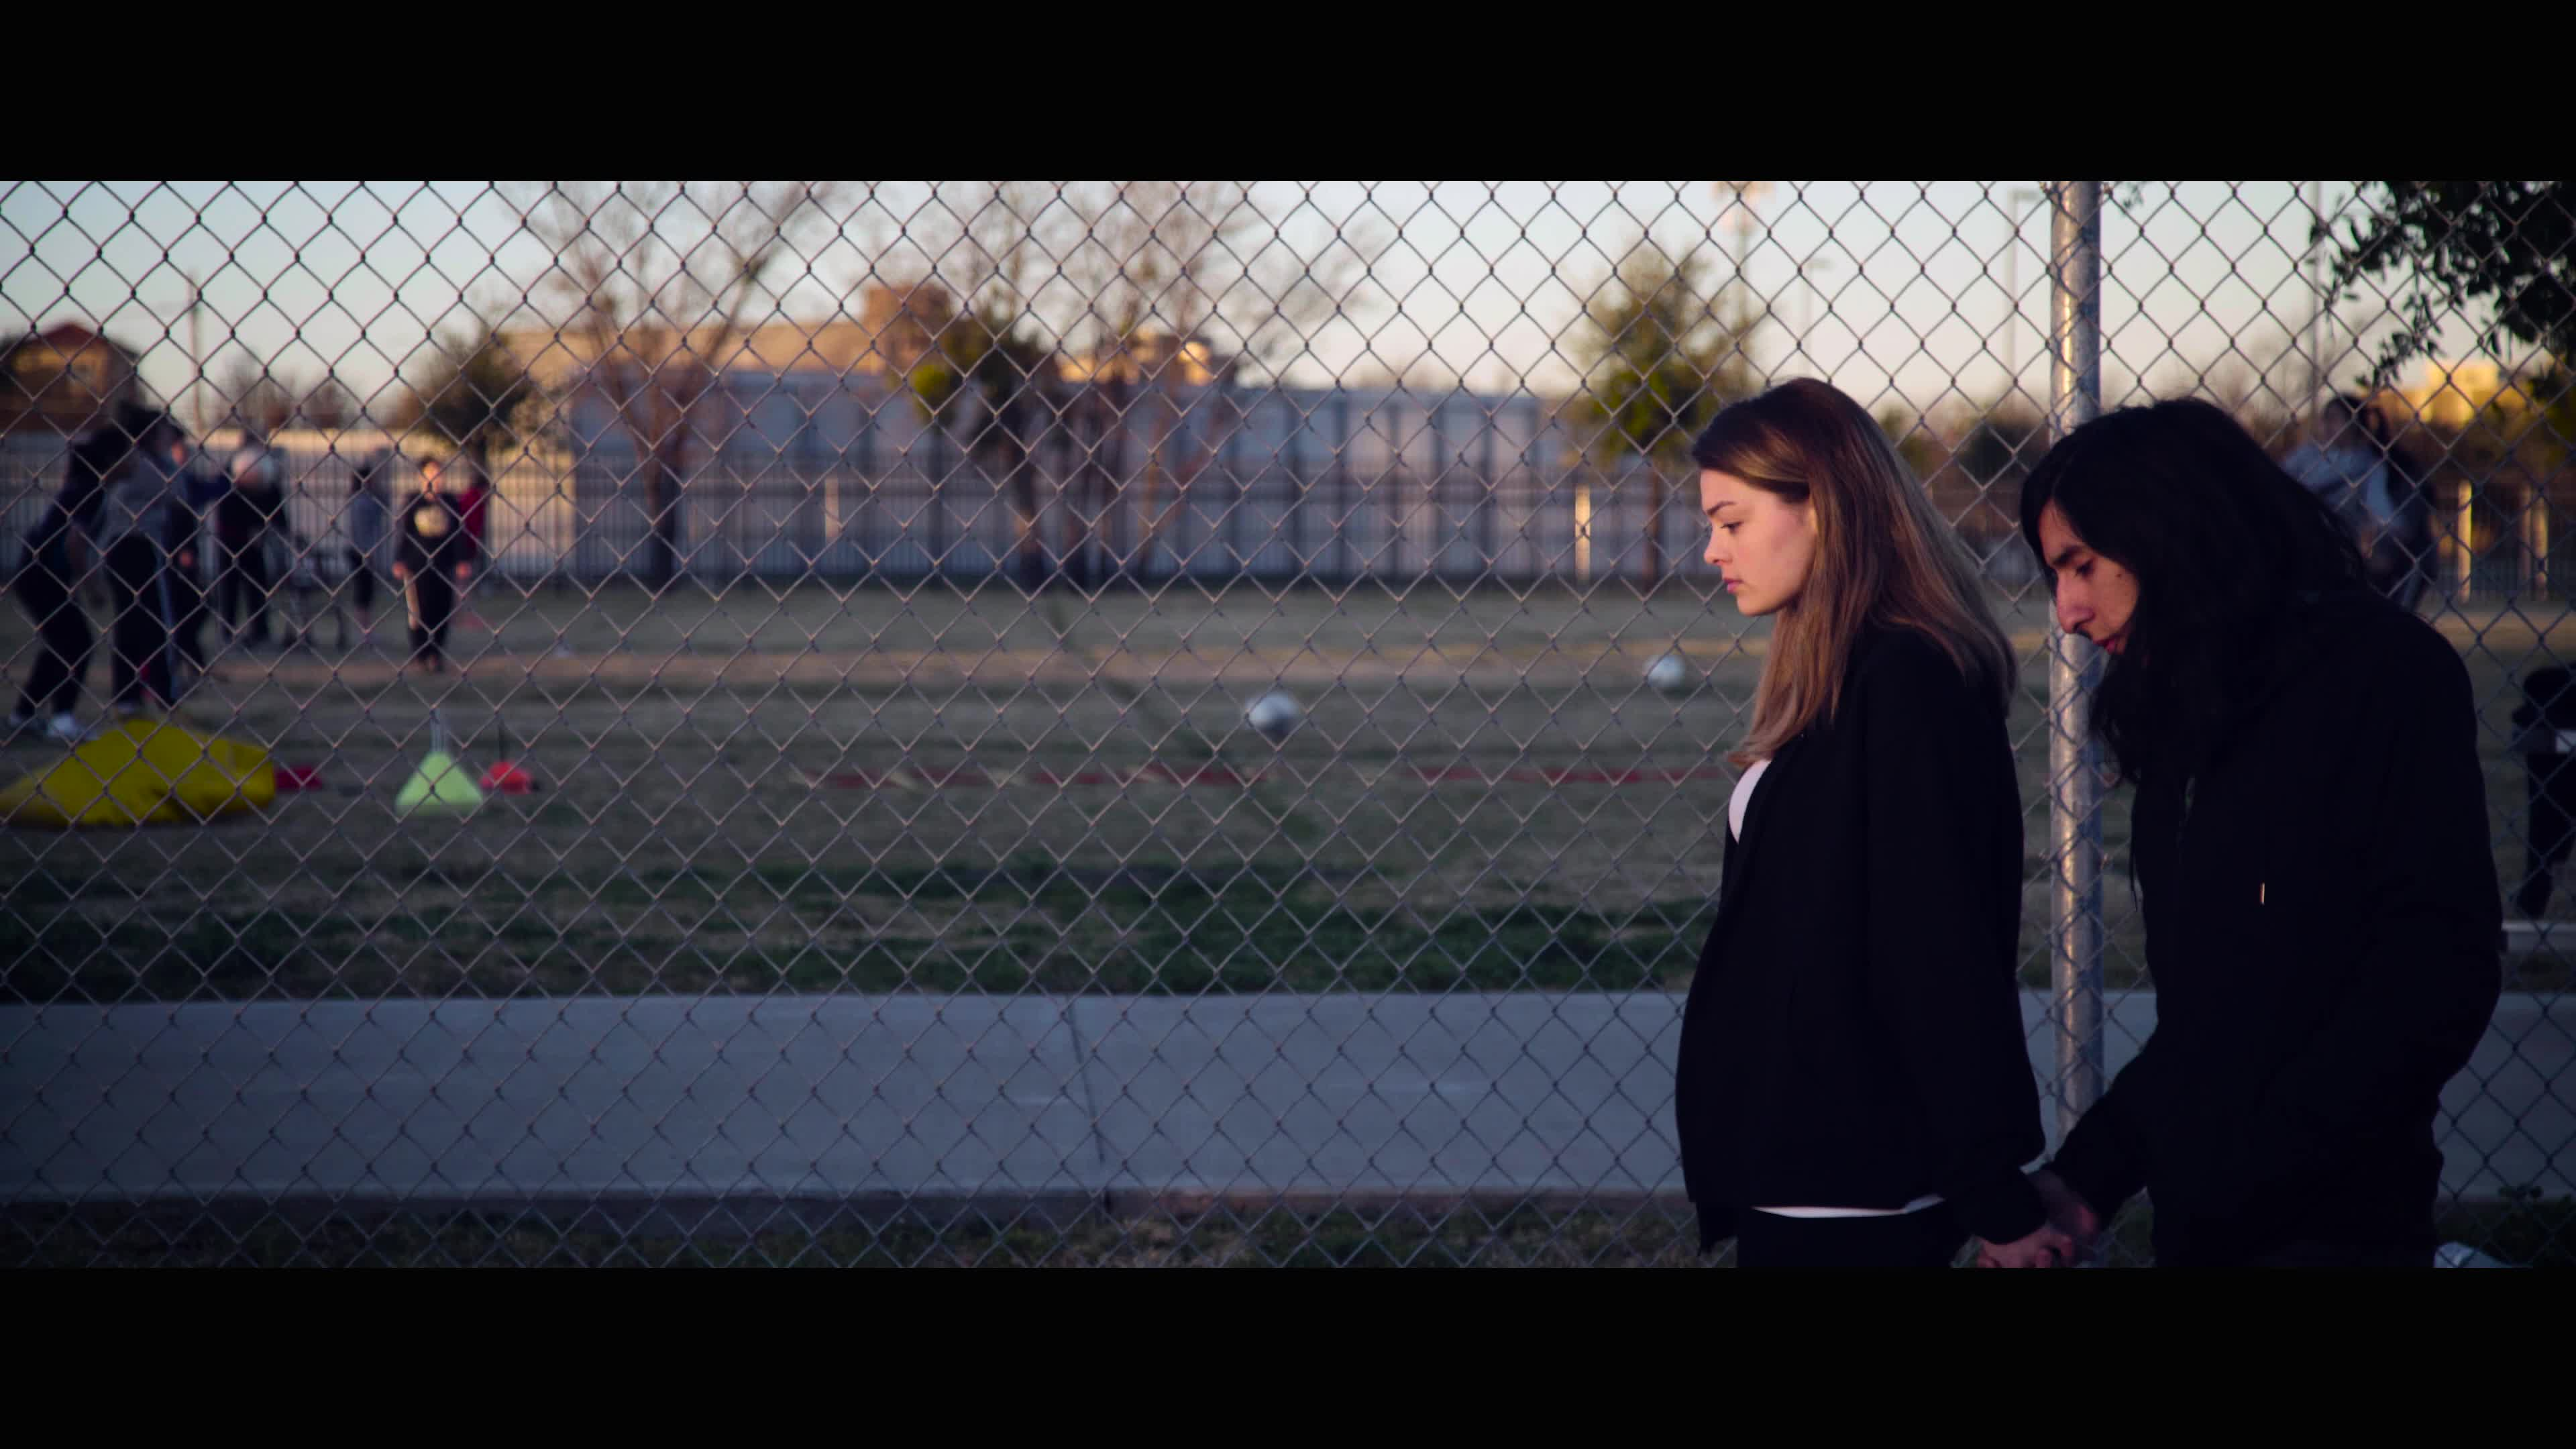 """Mary Kay's first video in its new """"1 in 3"""" series highlights the prevalence of abuse in dating relationships."""